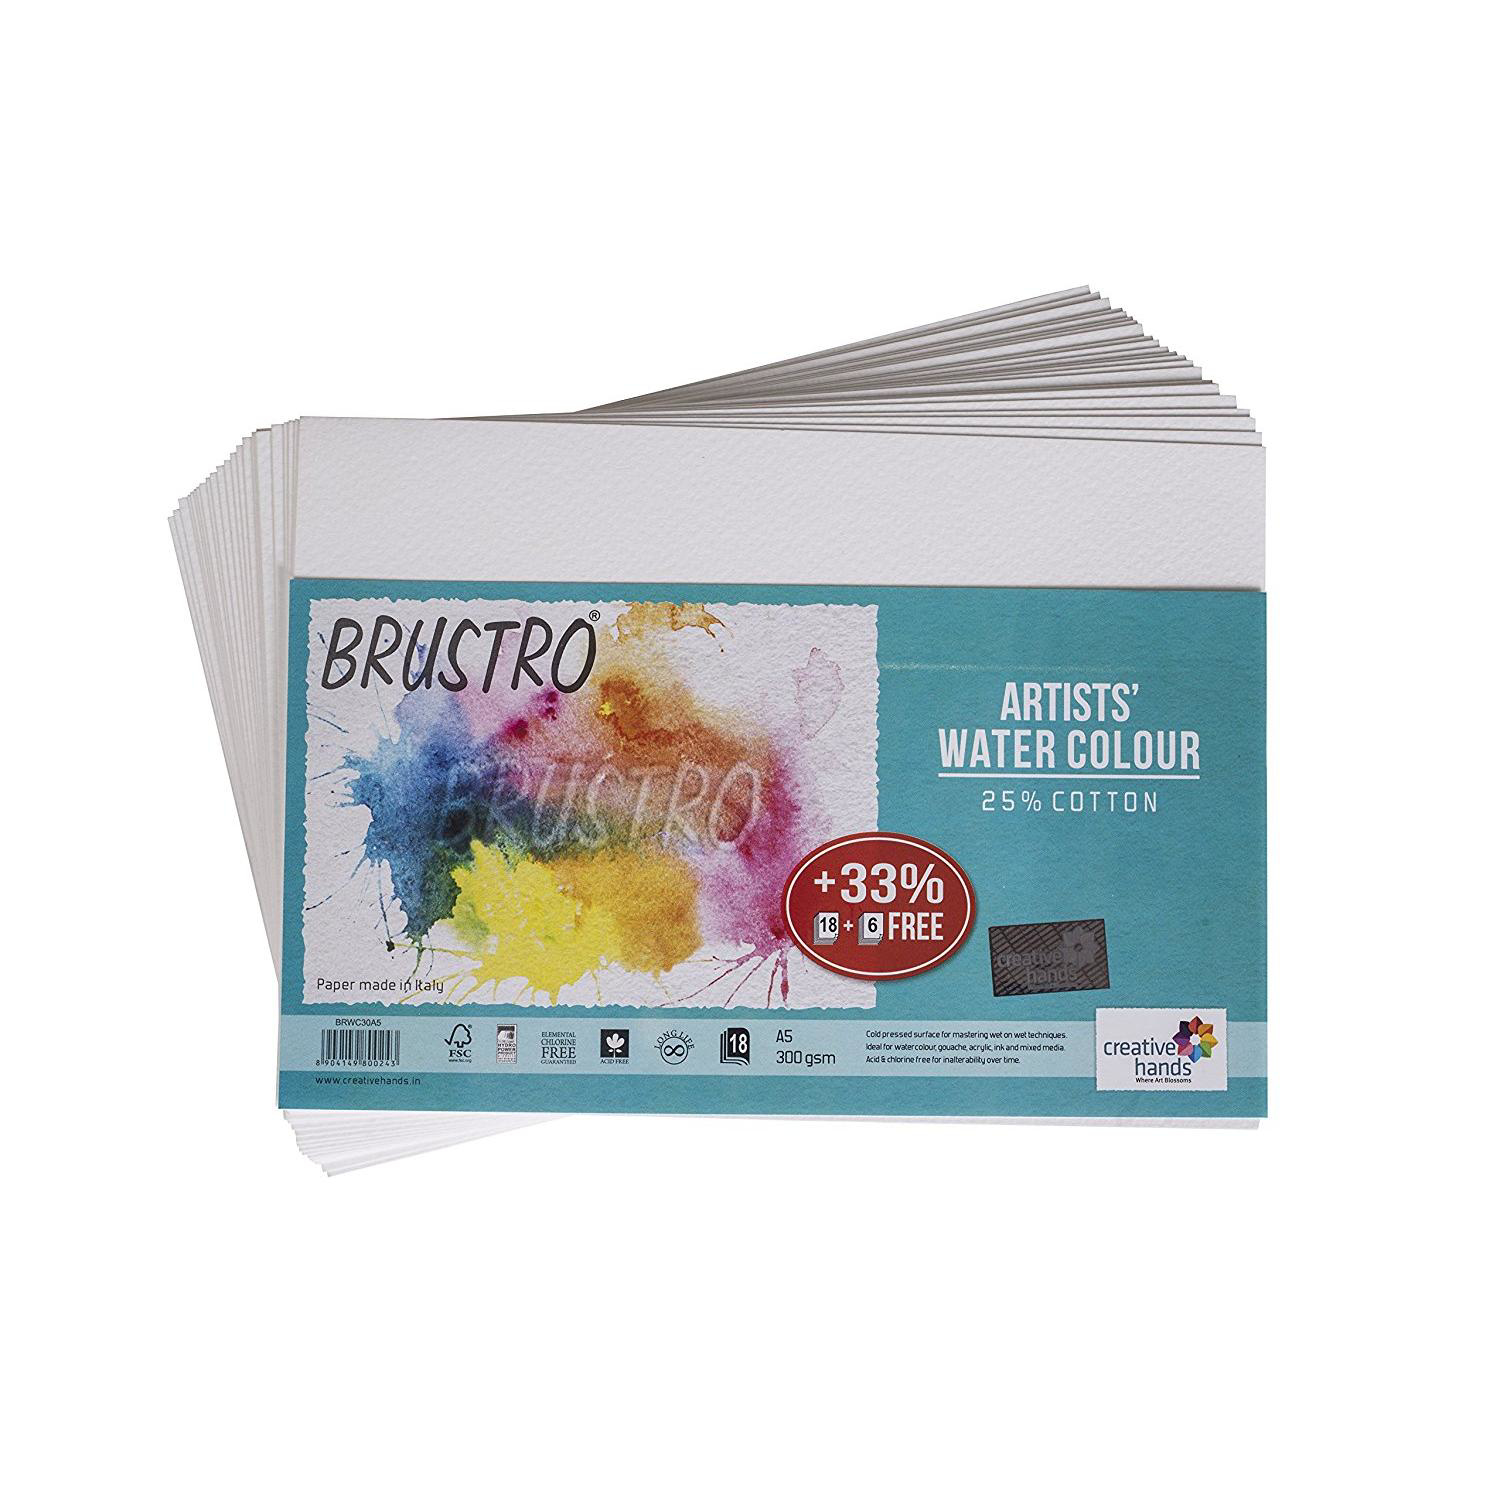 Brustro Artists' Watercolour Paper 300 GSM A5 - 25% cotton (18+6 Sheets)